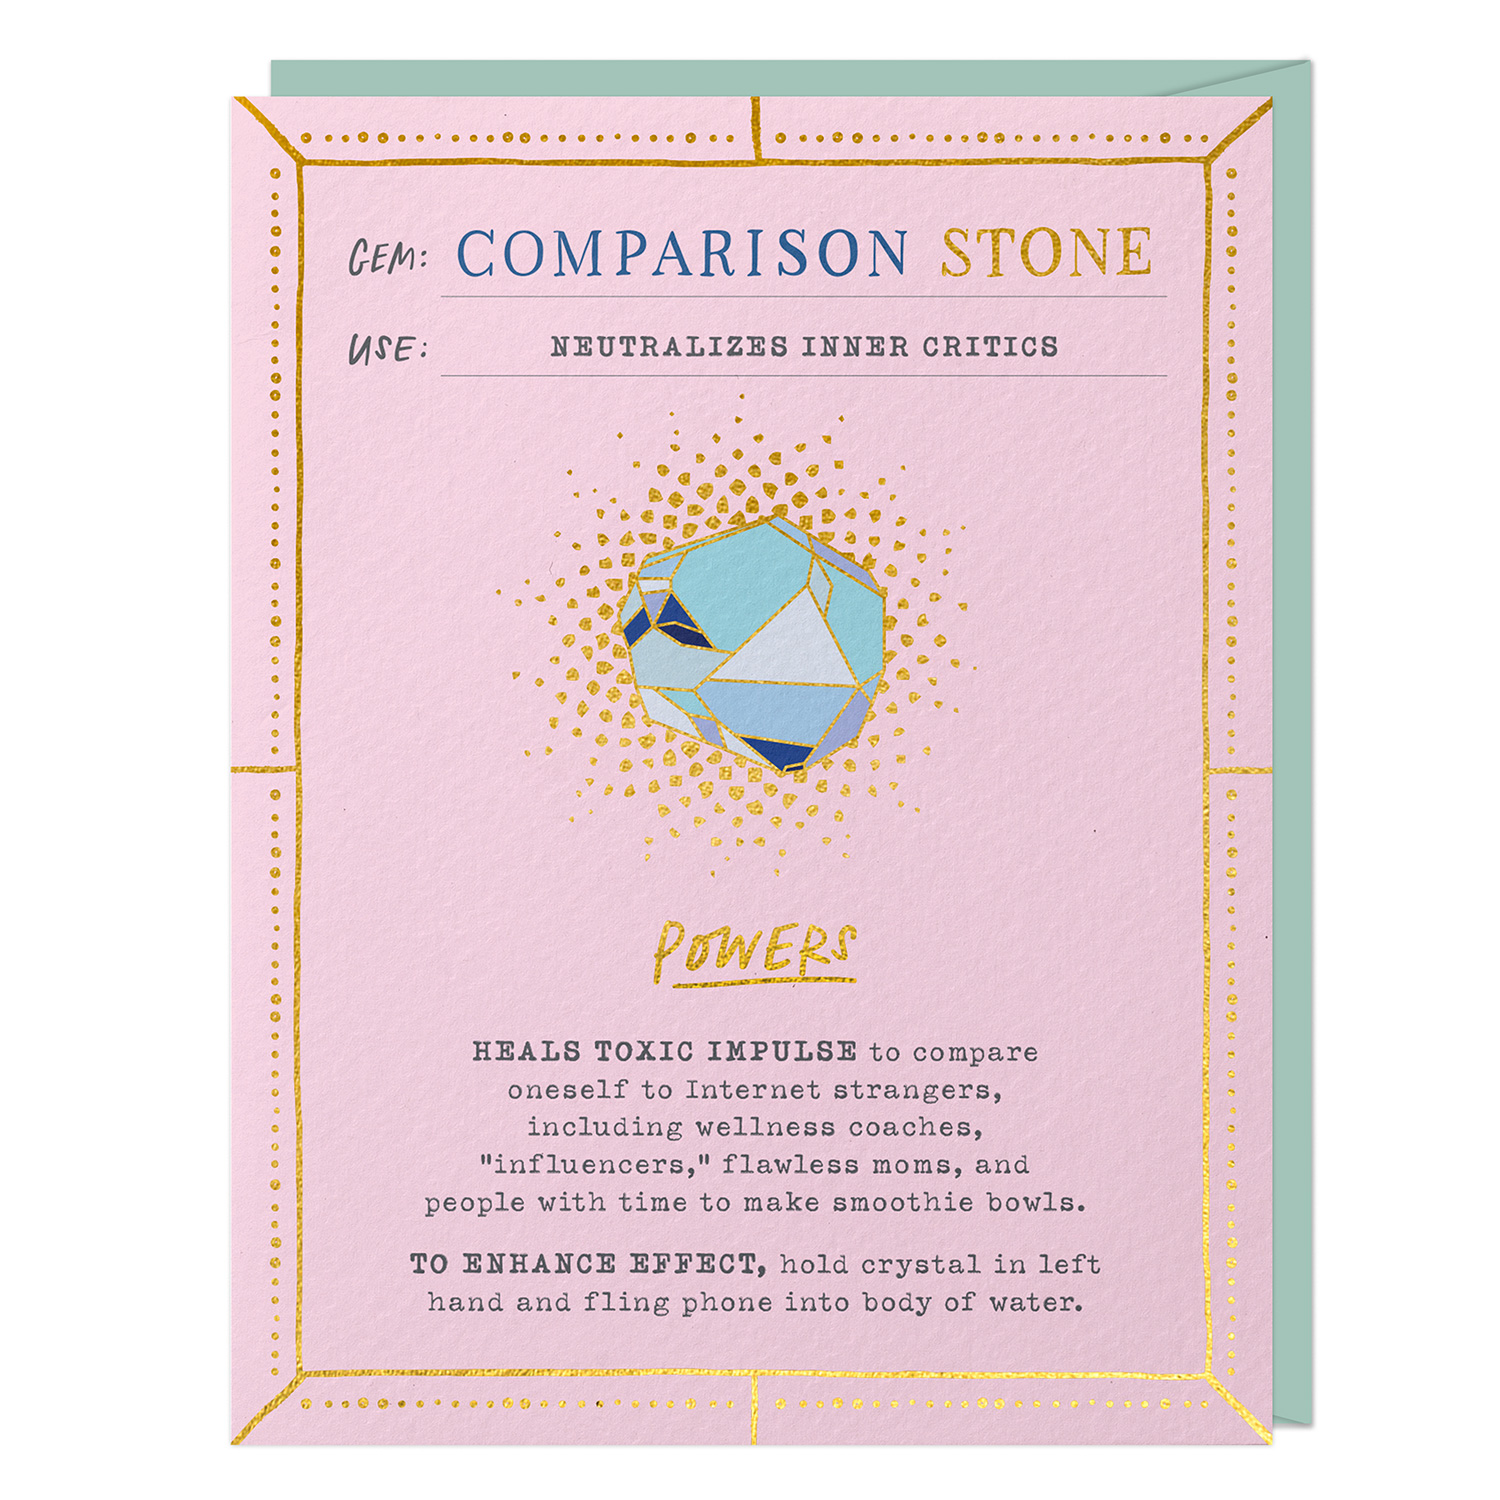 Fantasy Stone Card: Comparison Stone